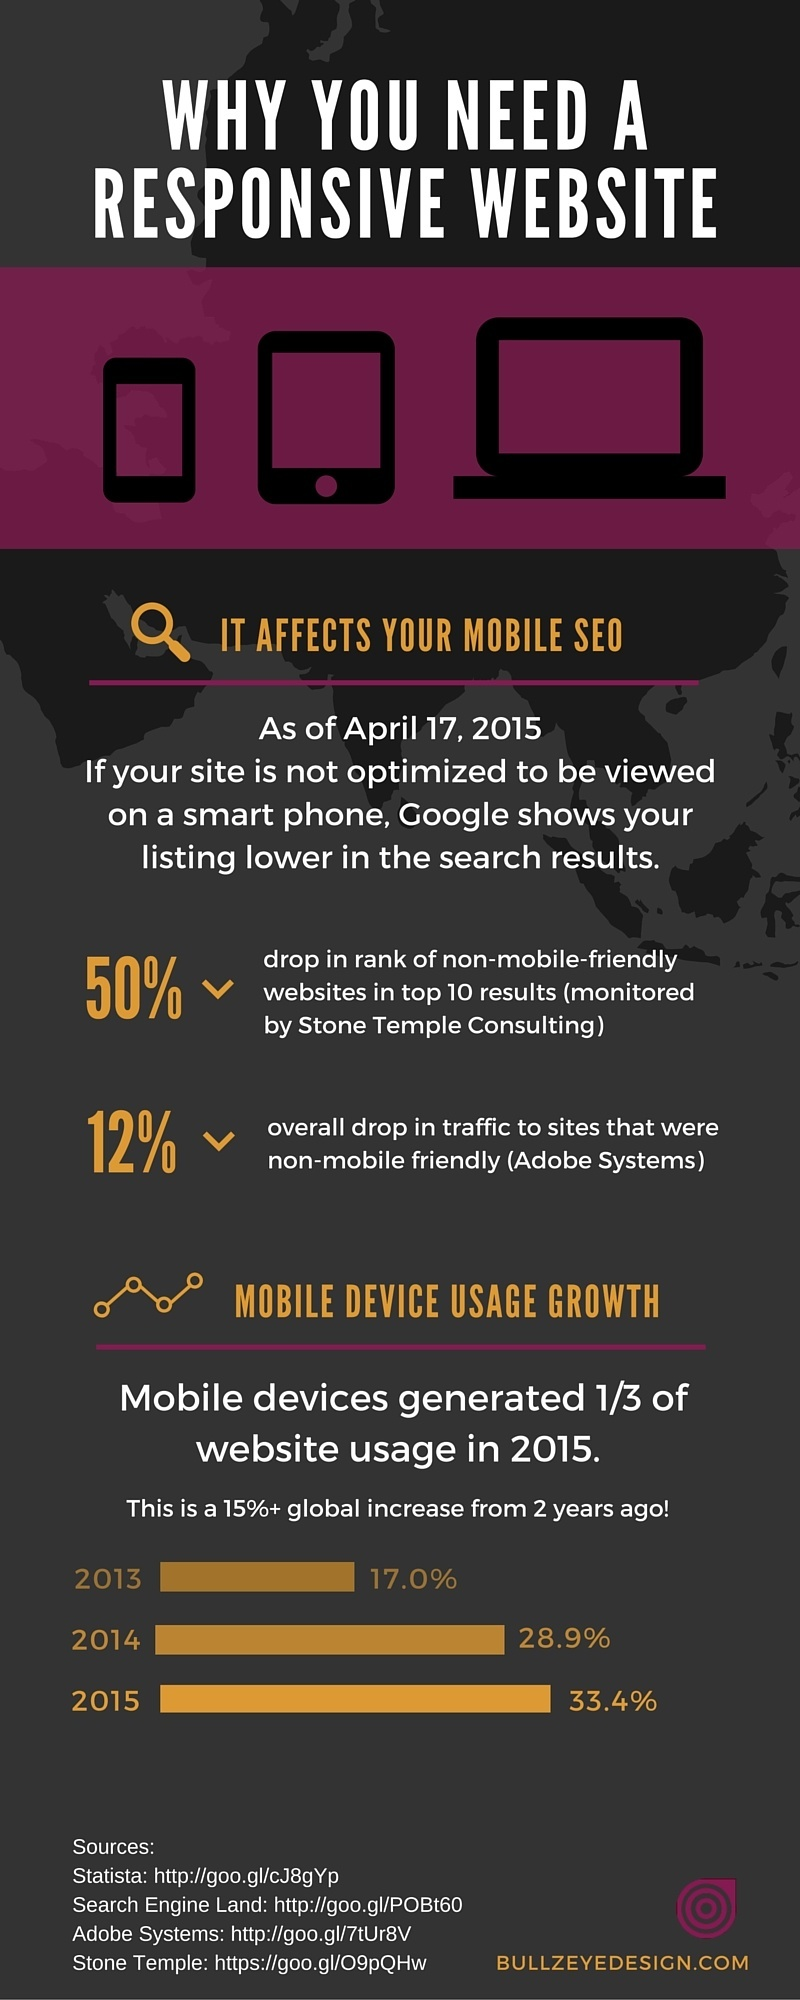 Why You Need a Responsive Website (Infographic) by BullzeyeDesign.com